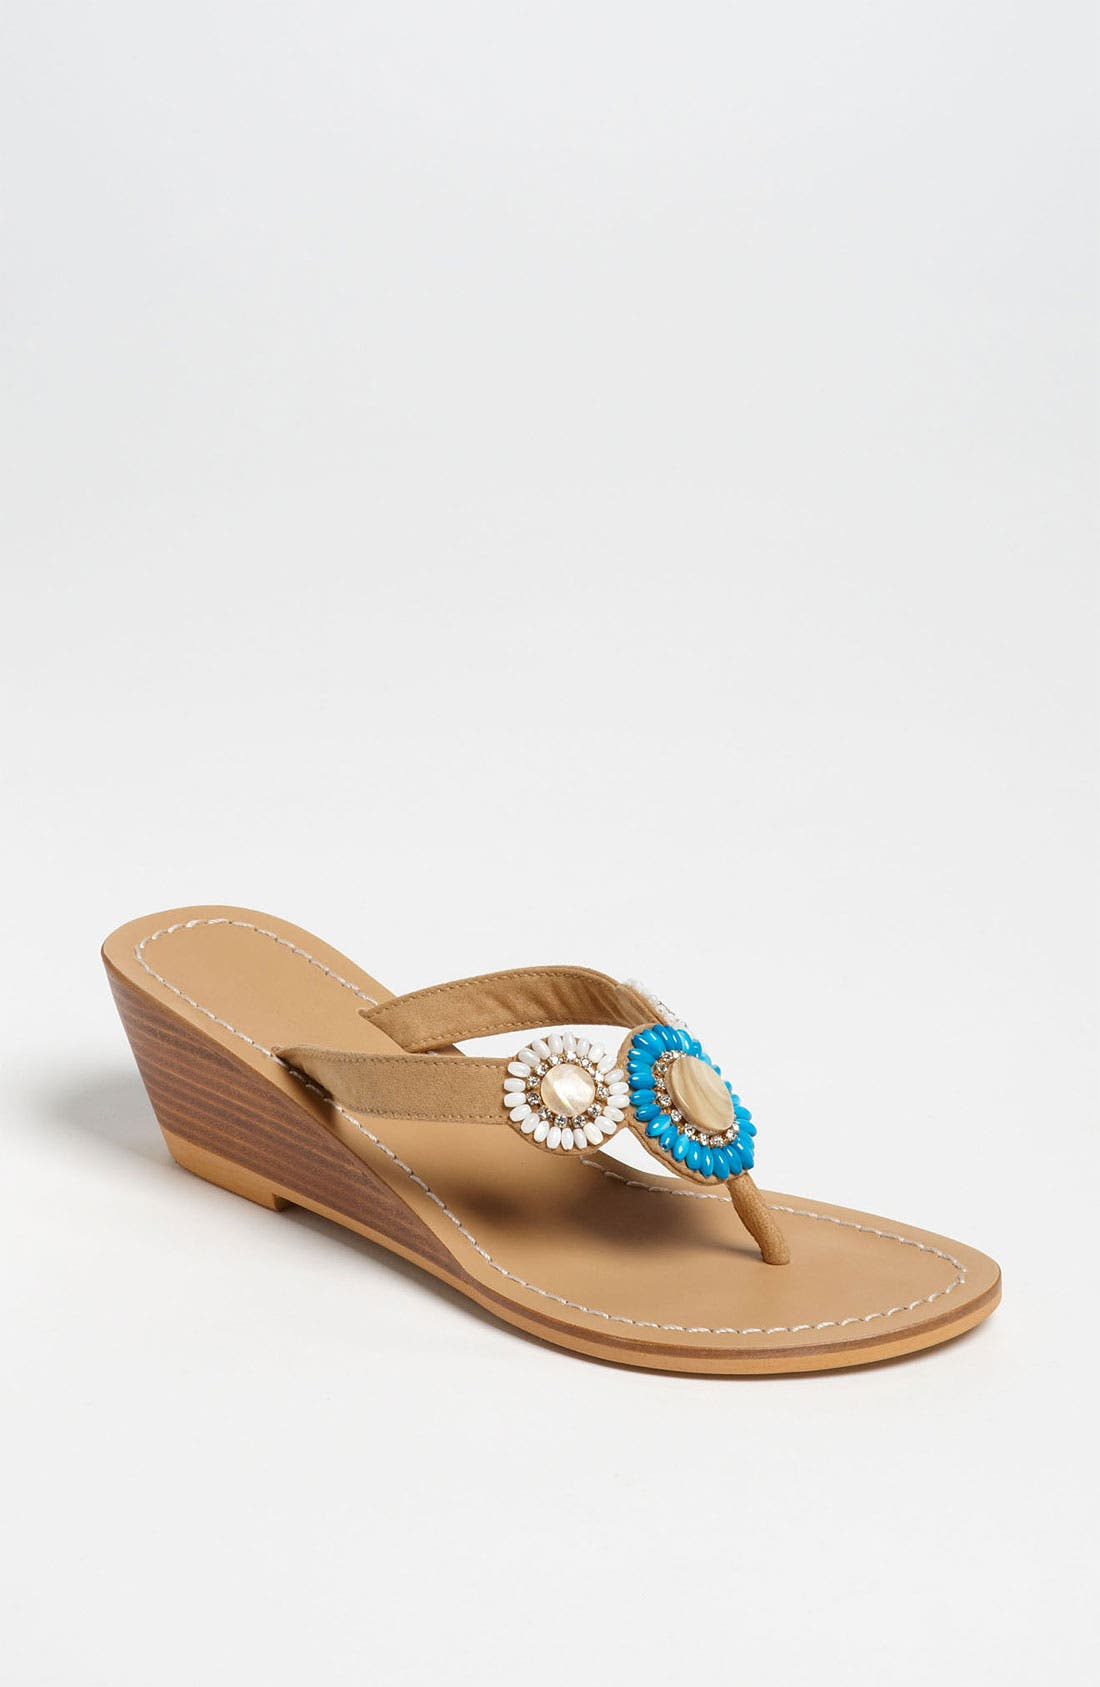 Alternate Image 1 Selected - Skemo Beaded Thong Sandal